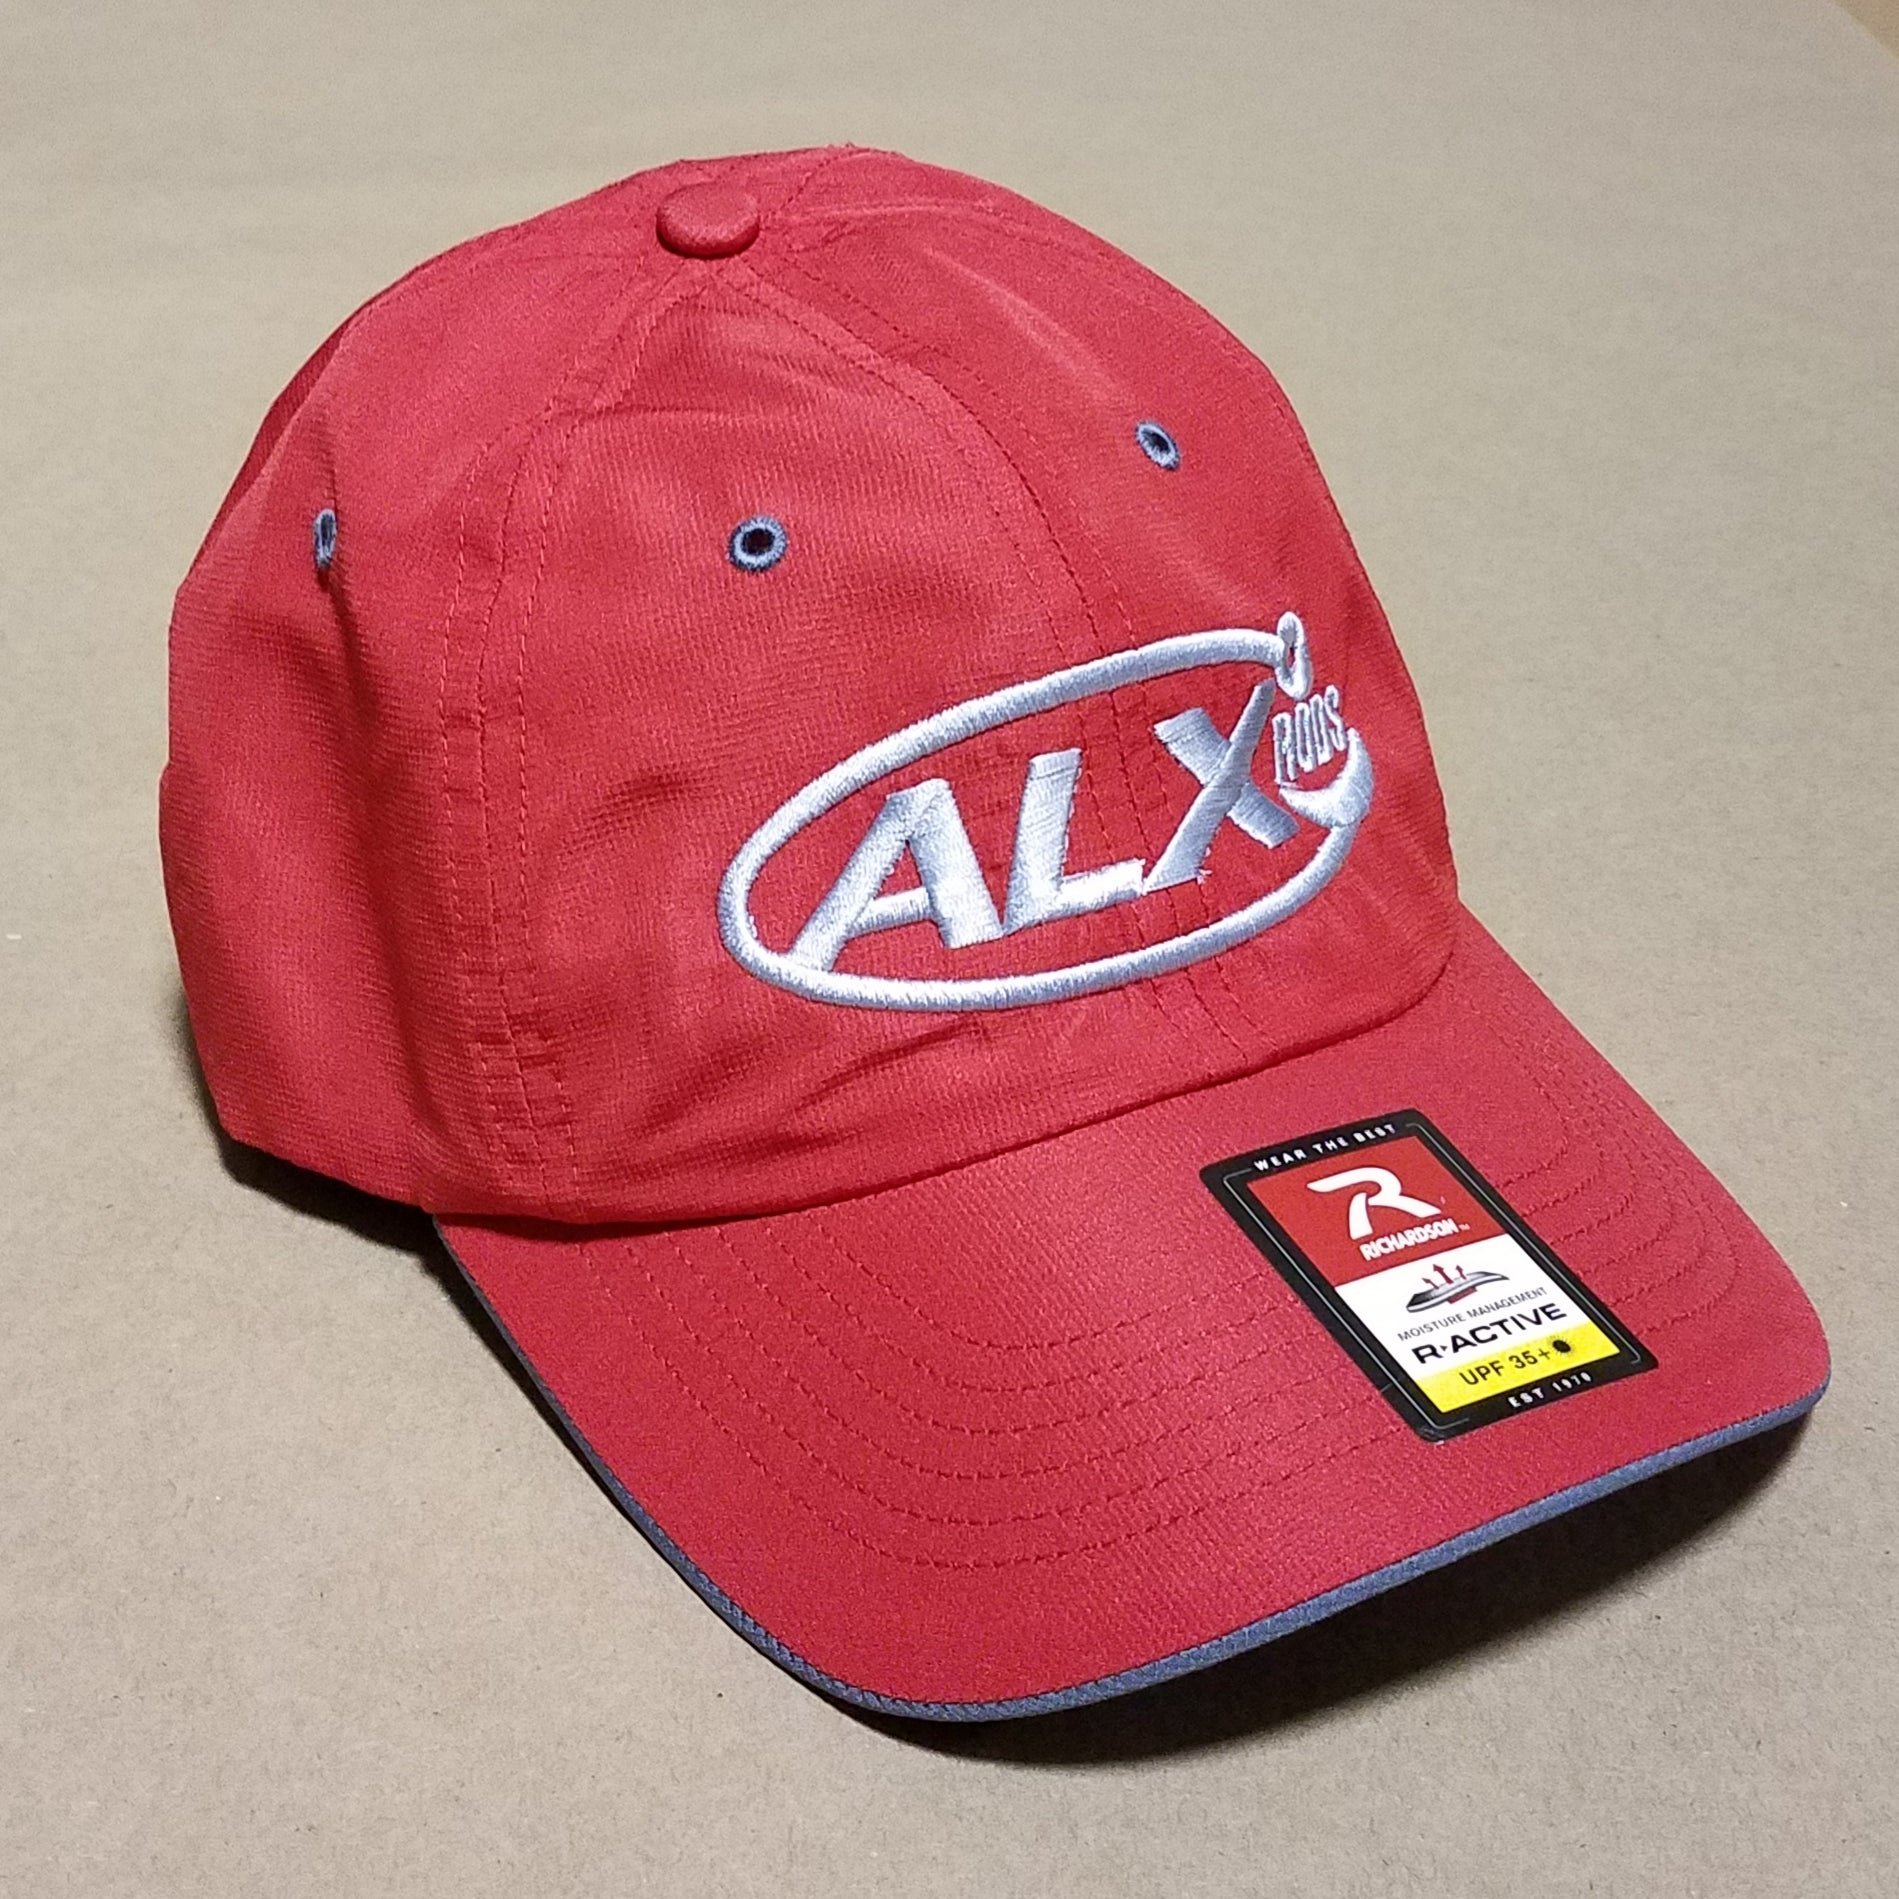 ALX Solar Active StayDry UPF35 Cap - Red